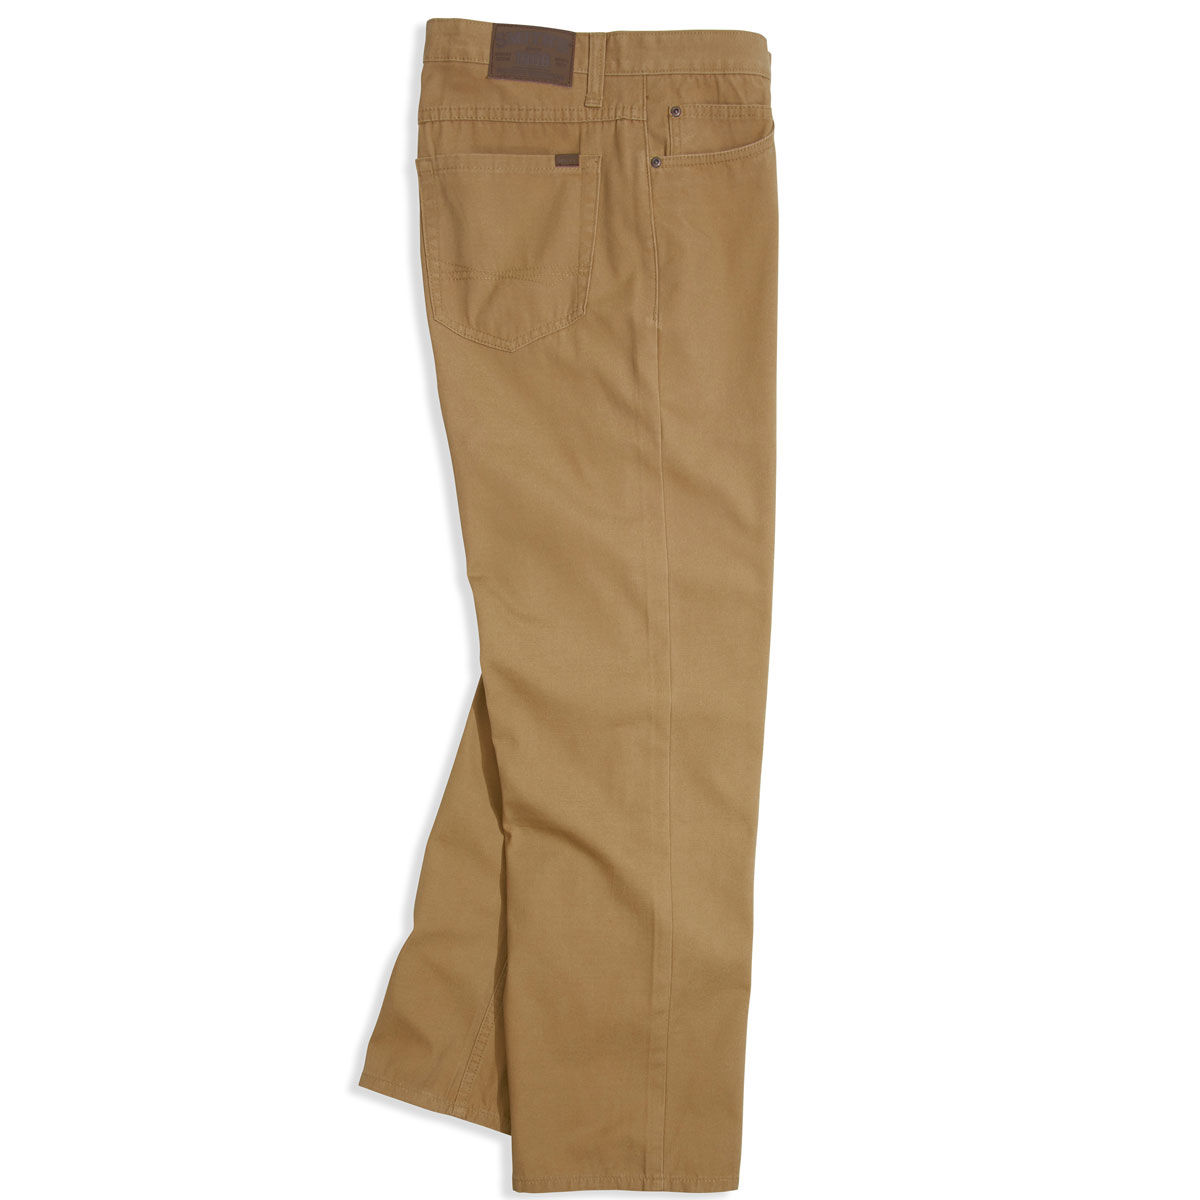 Smiths Stretch Canvas Big Mens 5 Pocket Pant